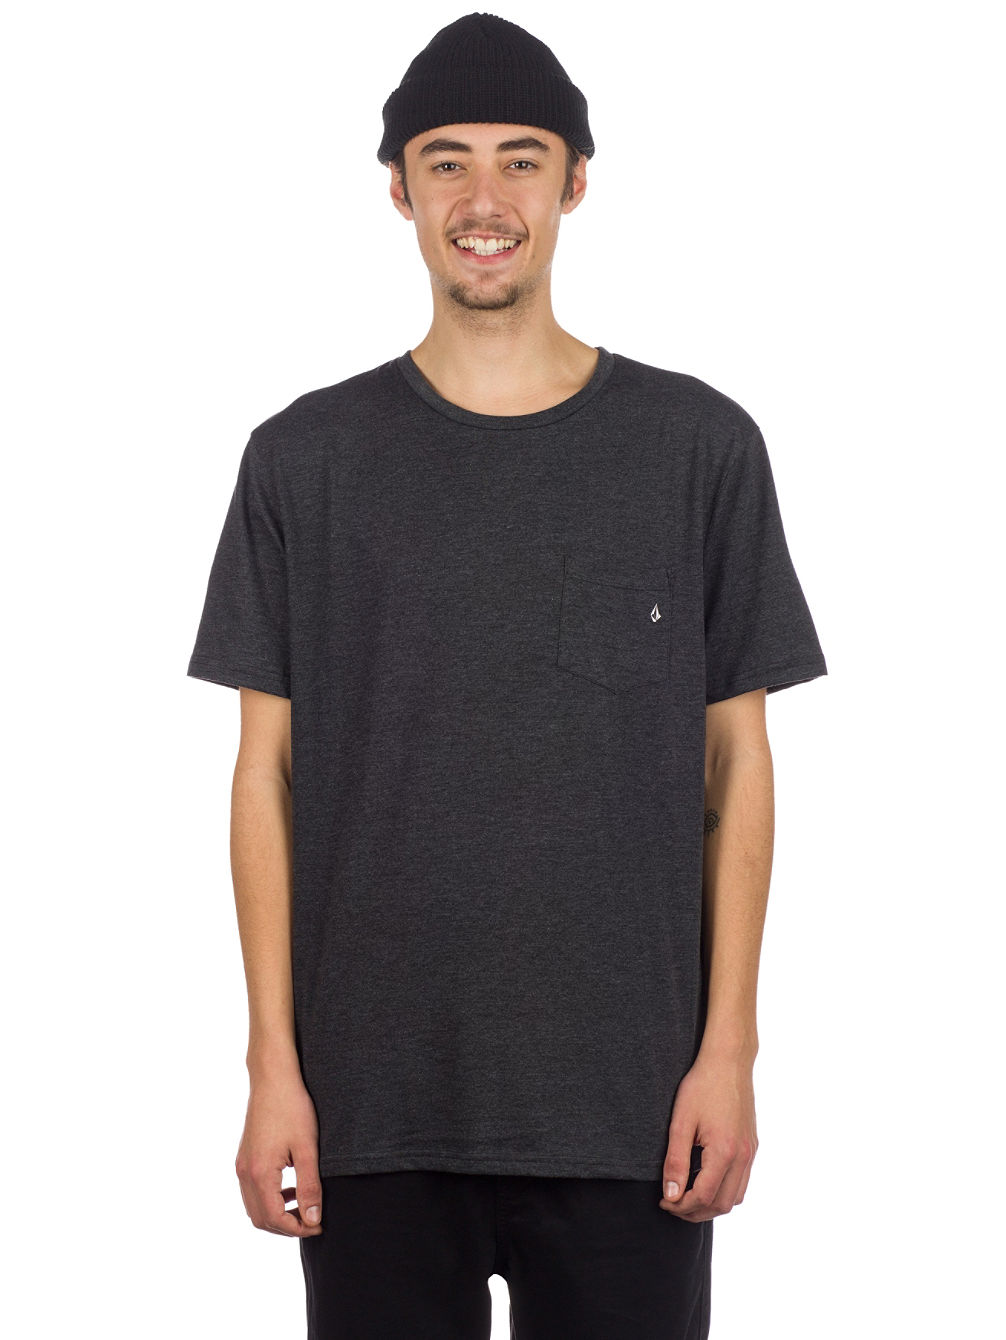 Heather Pocket HTH T-Shirt